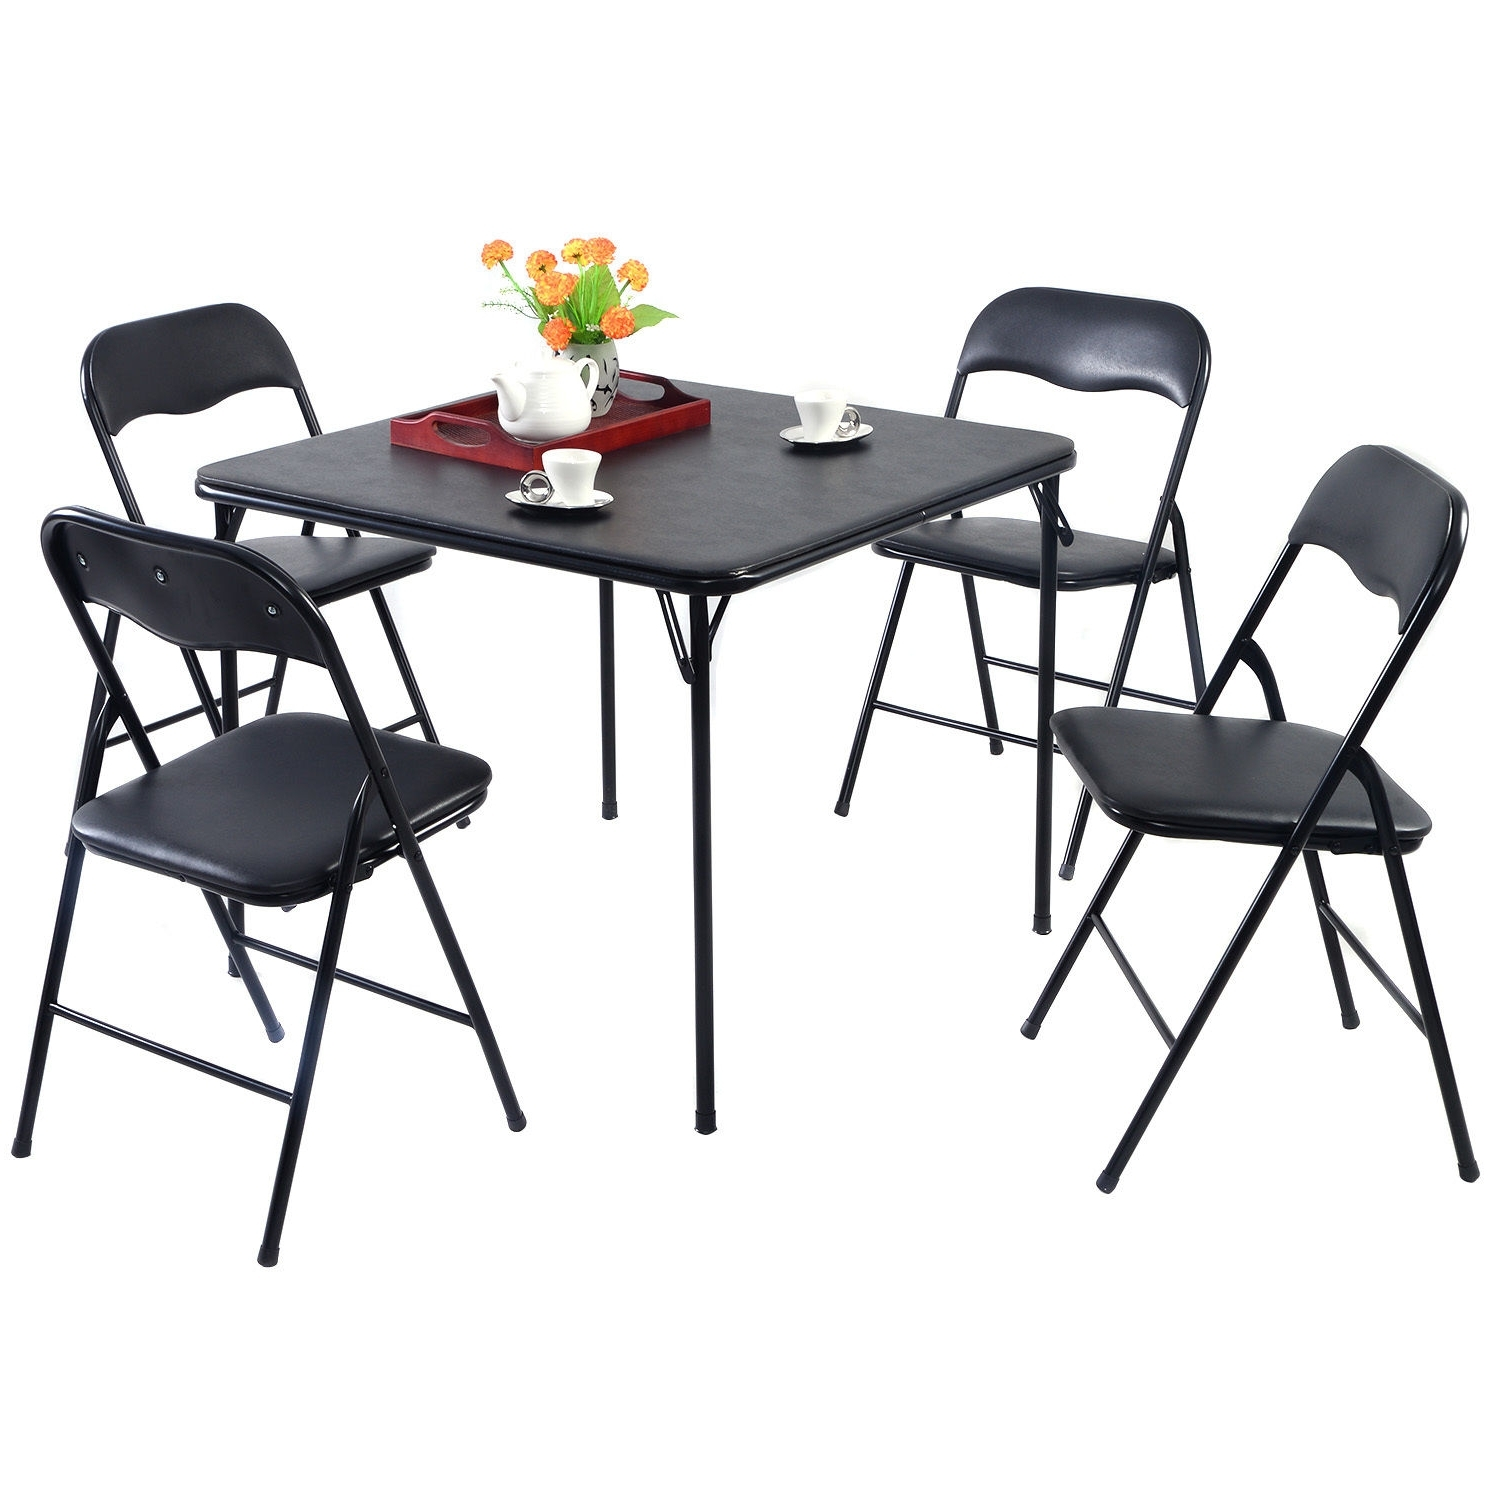 Black Folding Dining Tables And Chairs With Favorite Goplus 5Pc Black Folding Table Chair Set Guest Games Dining Room (Gallery 20 of 25)